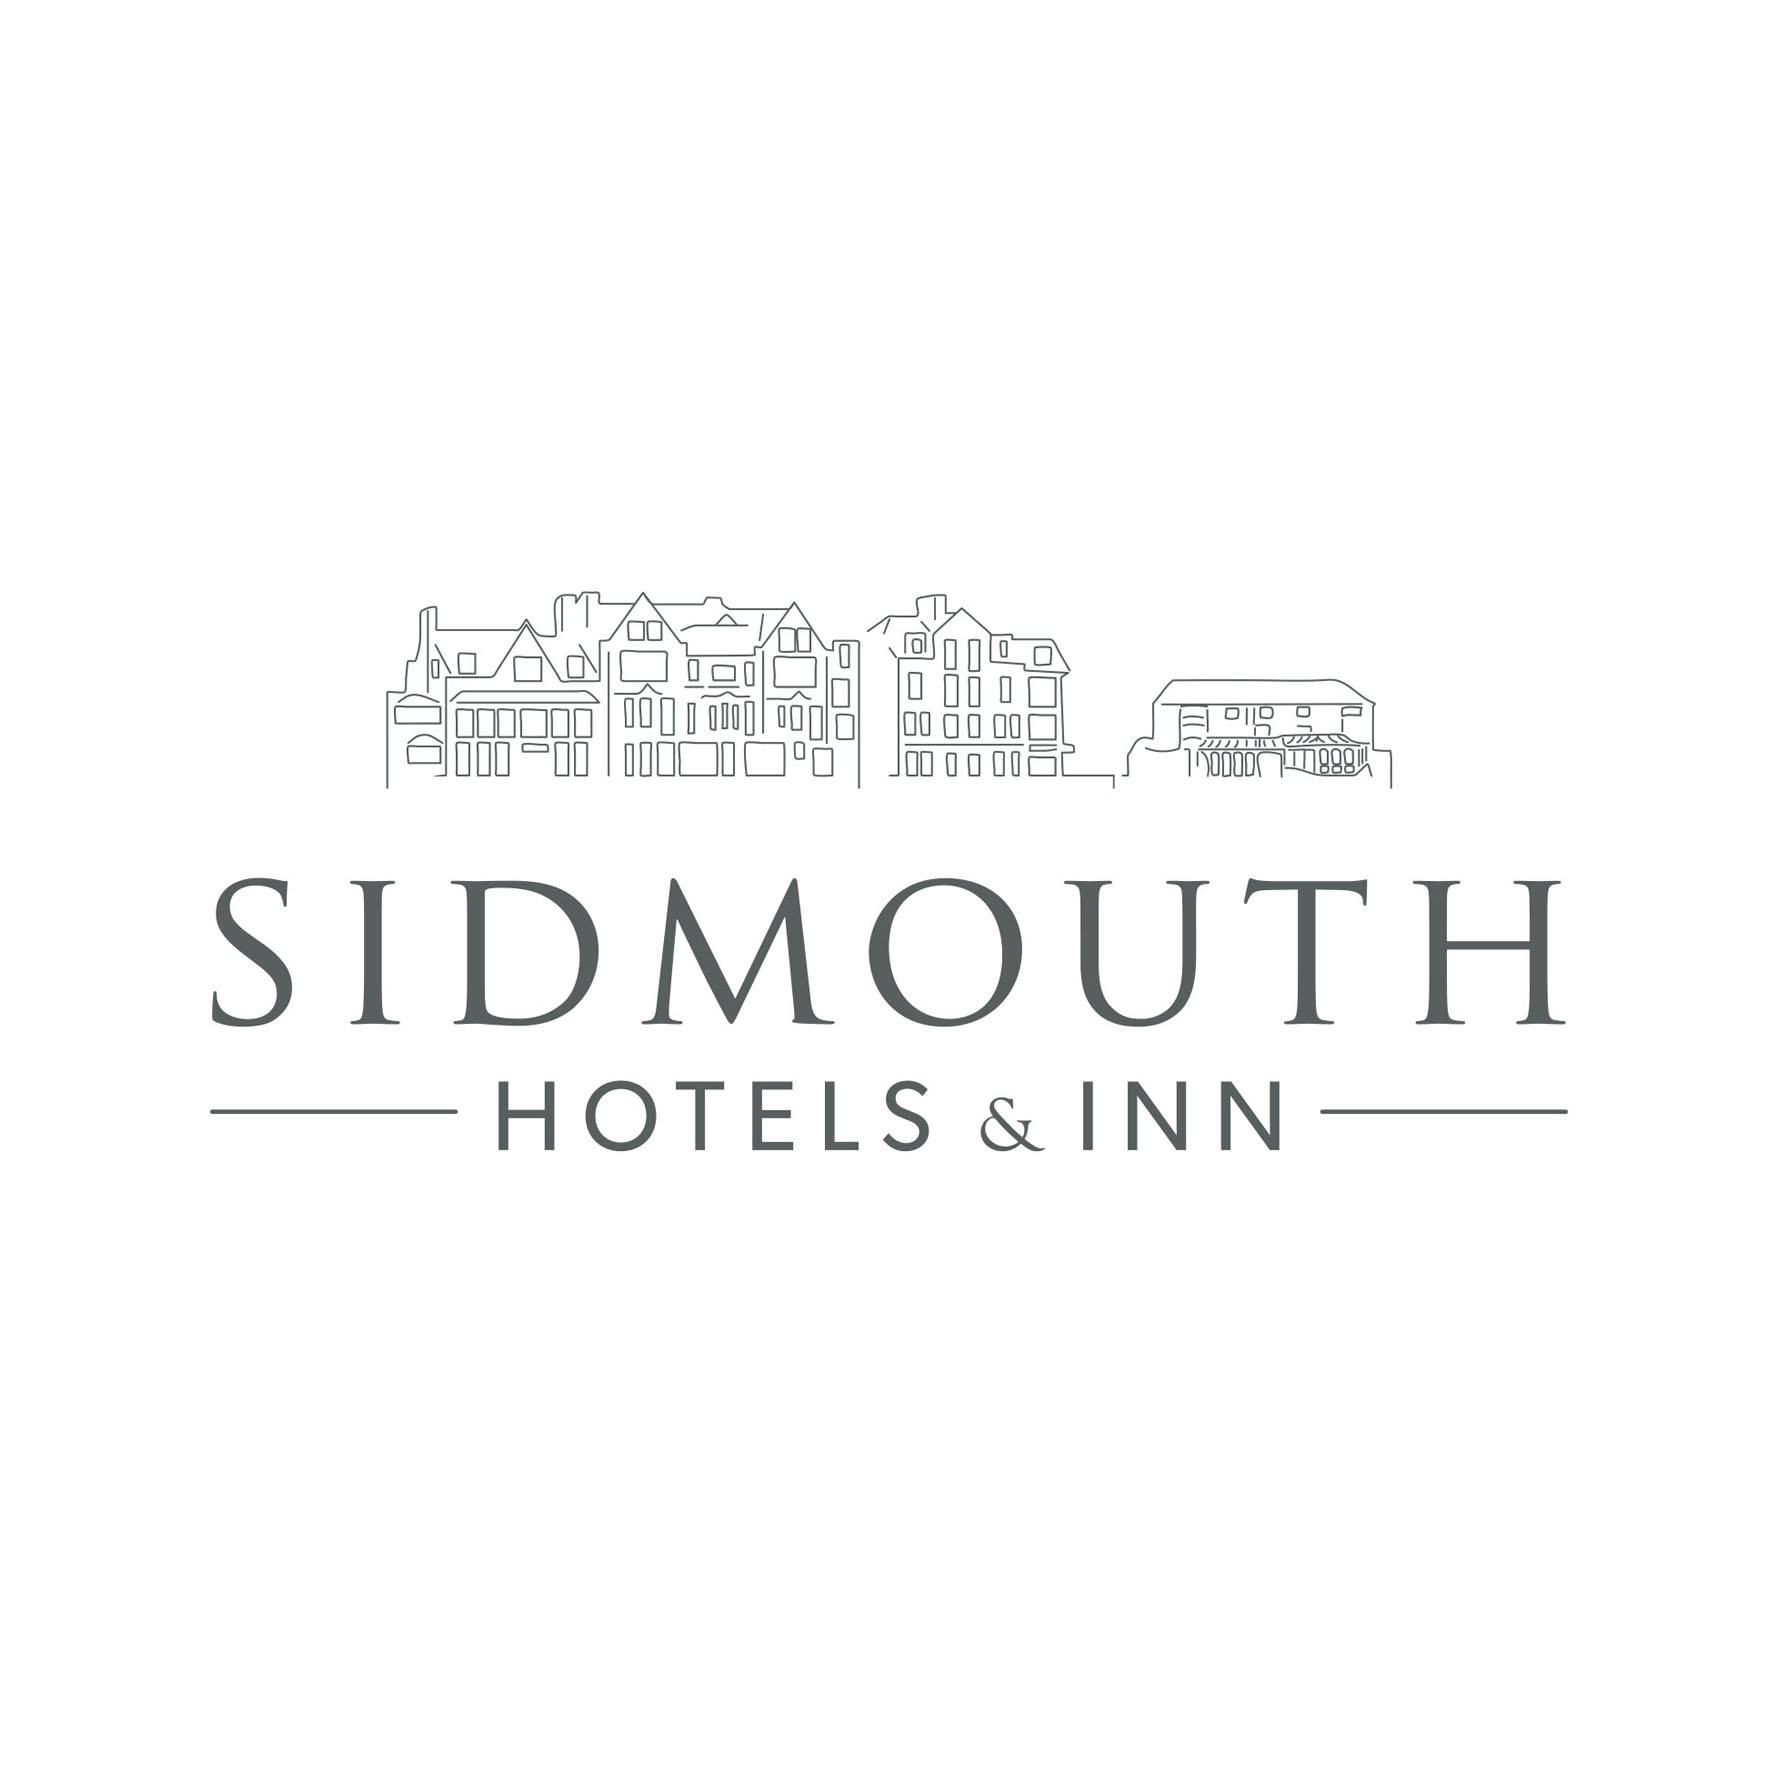 Sidmouth Hotels & Inn